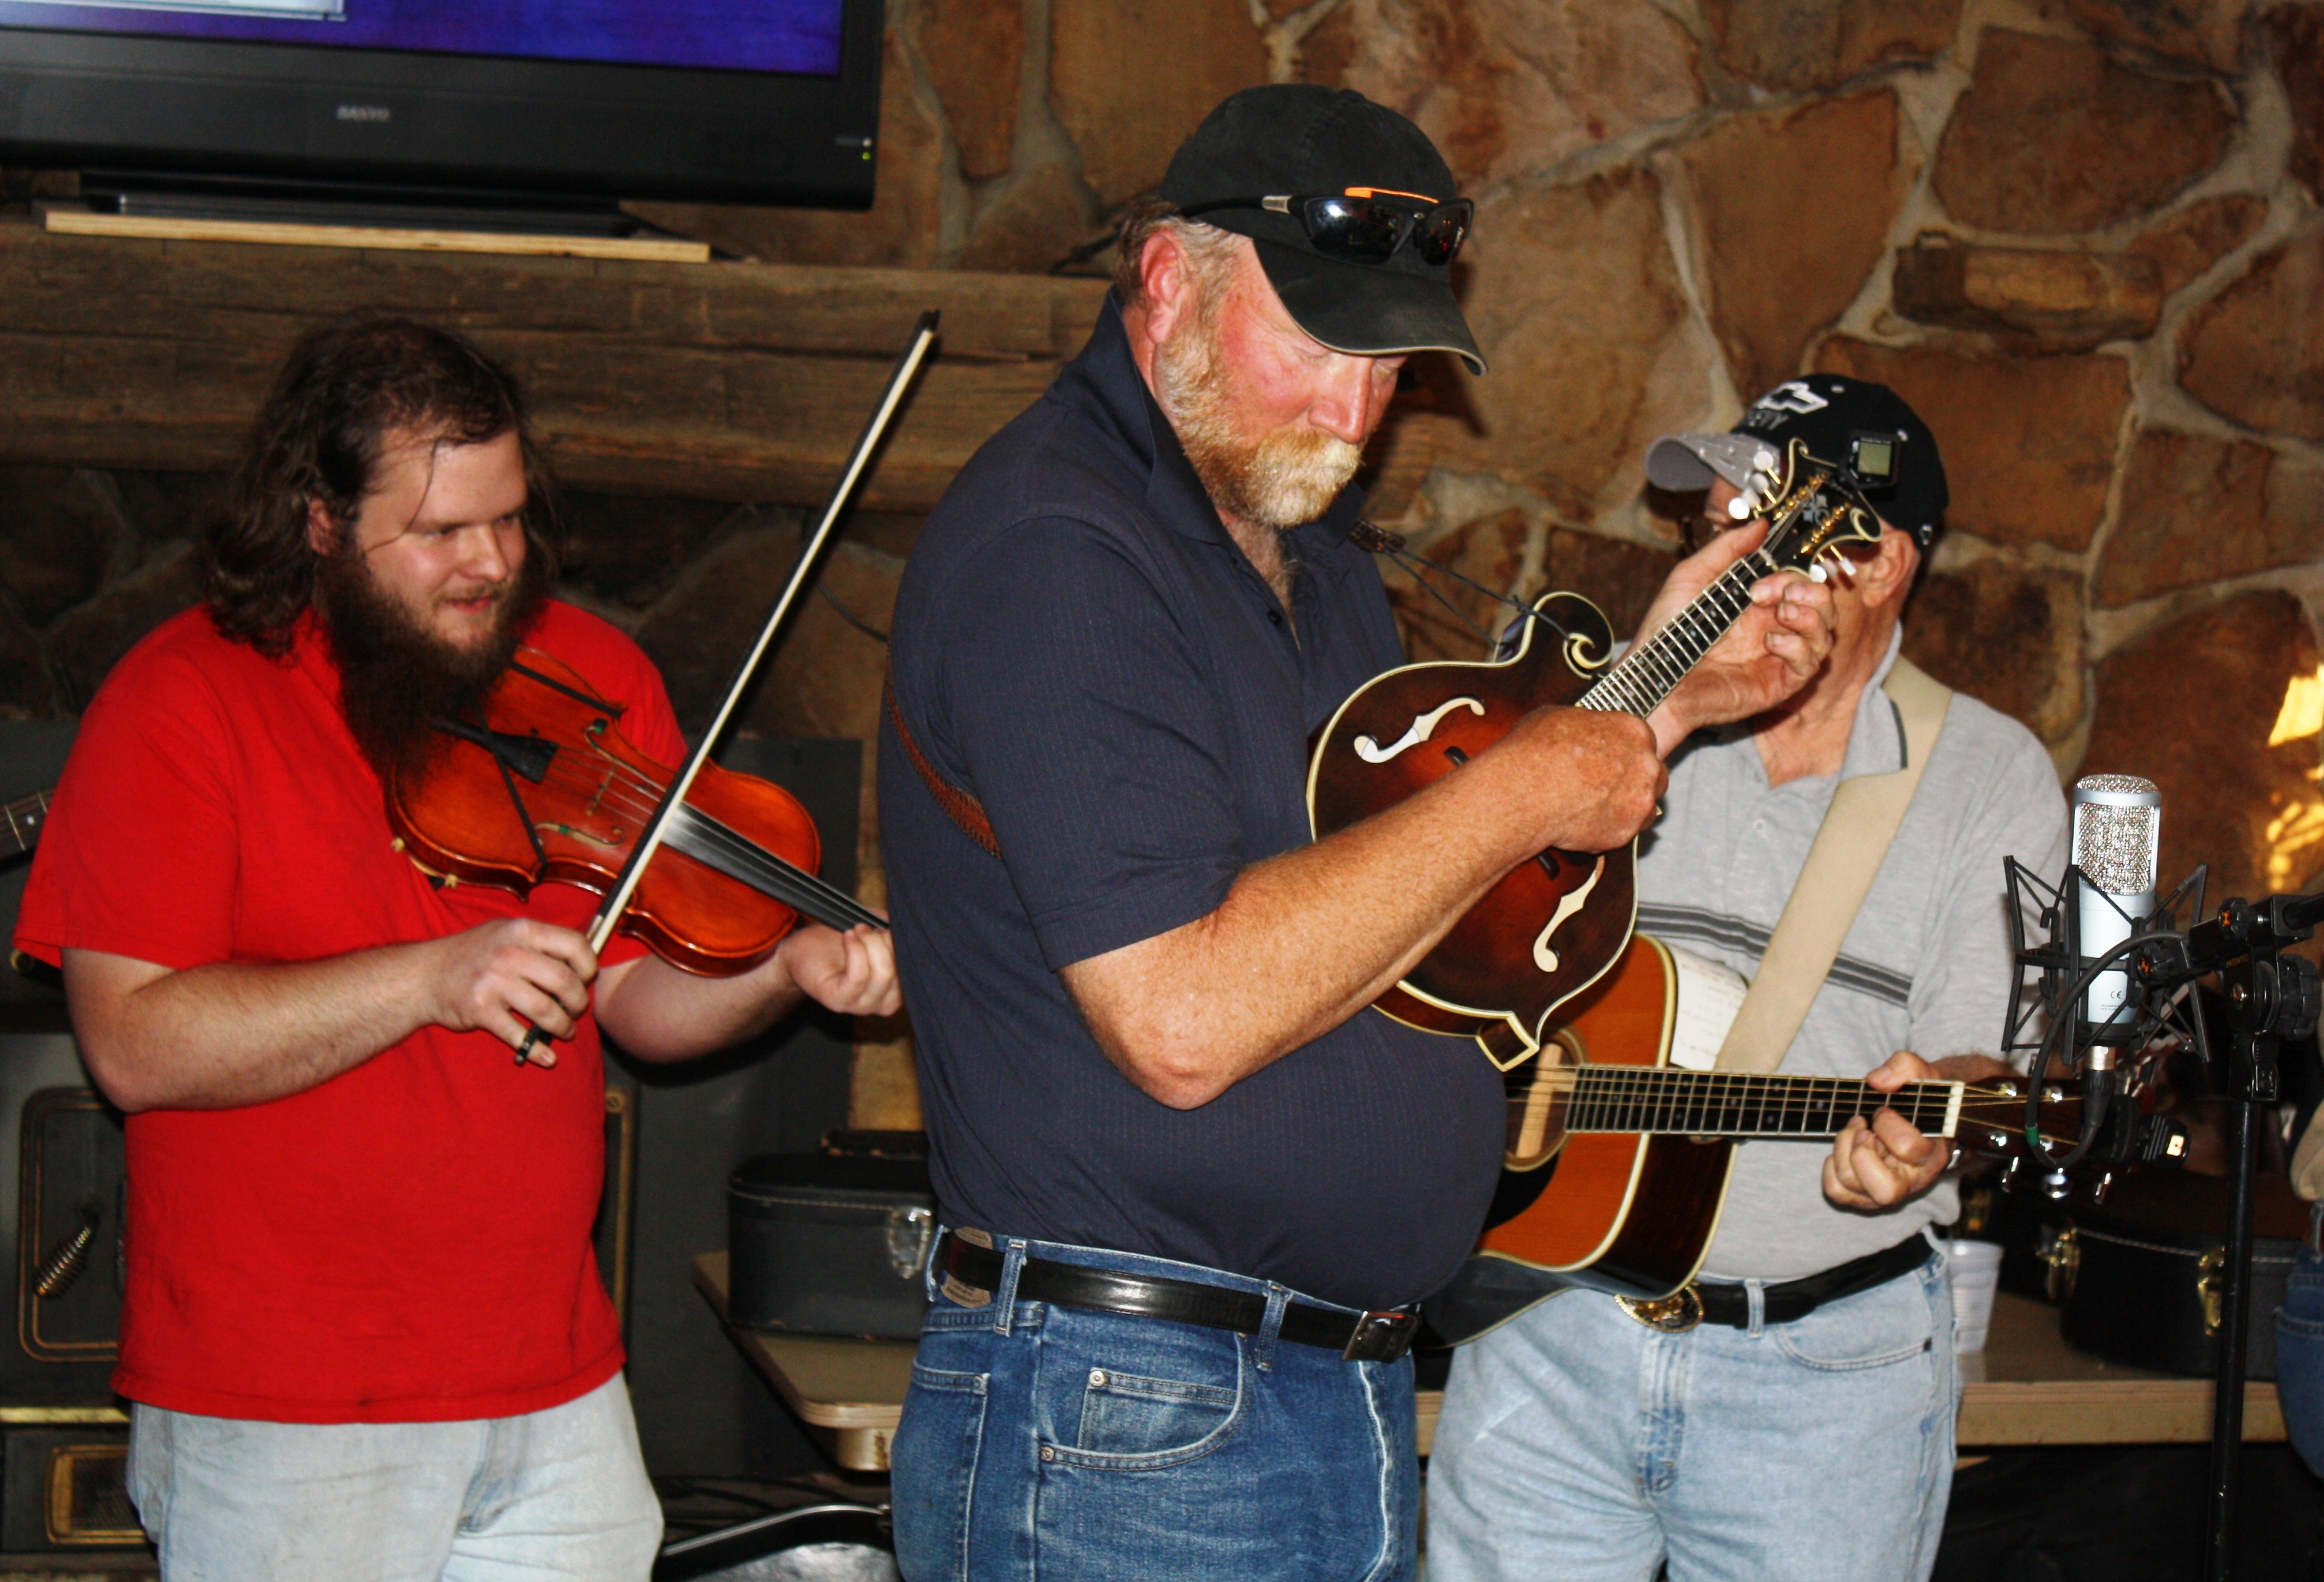 Bluegrass Night at JG's